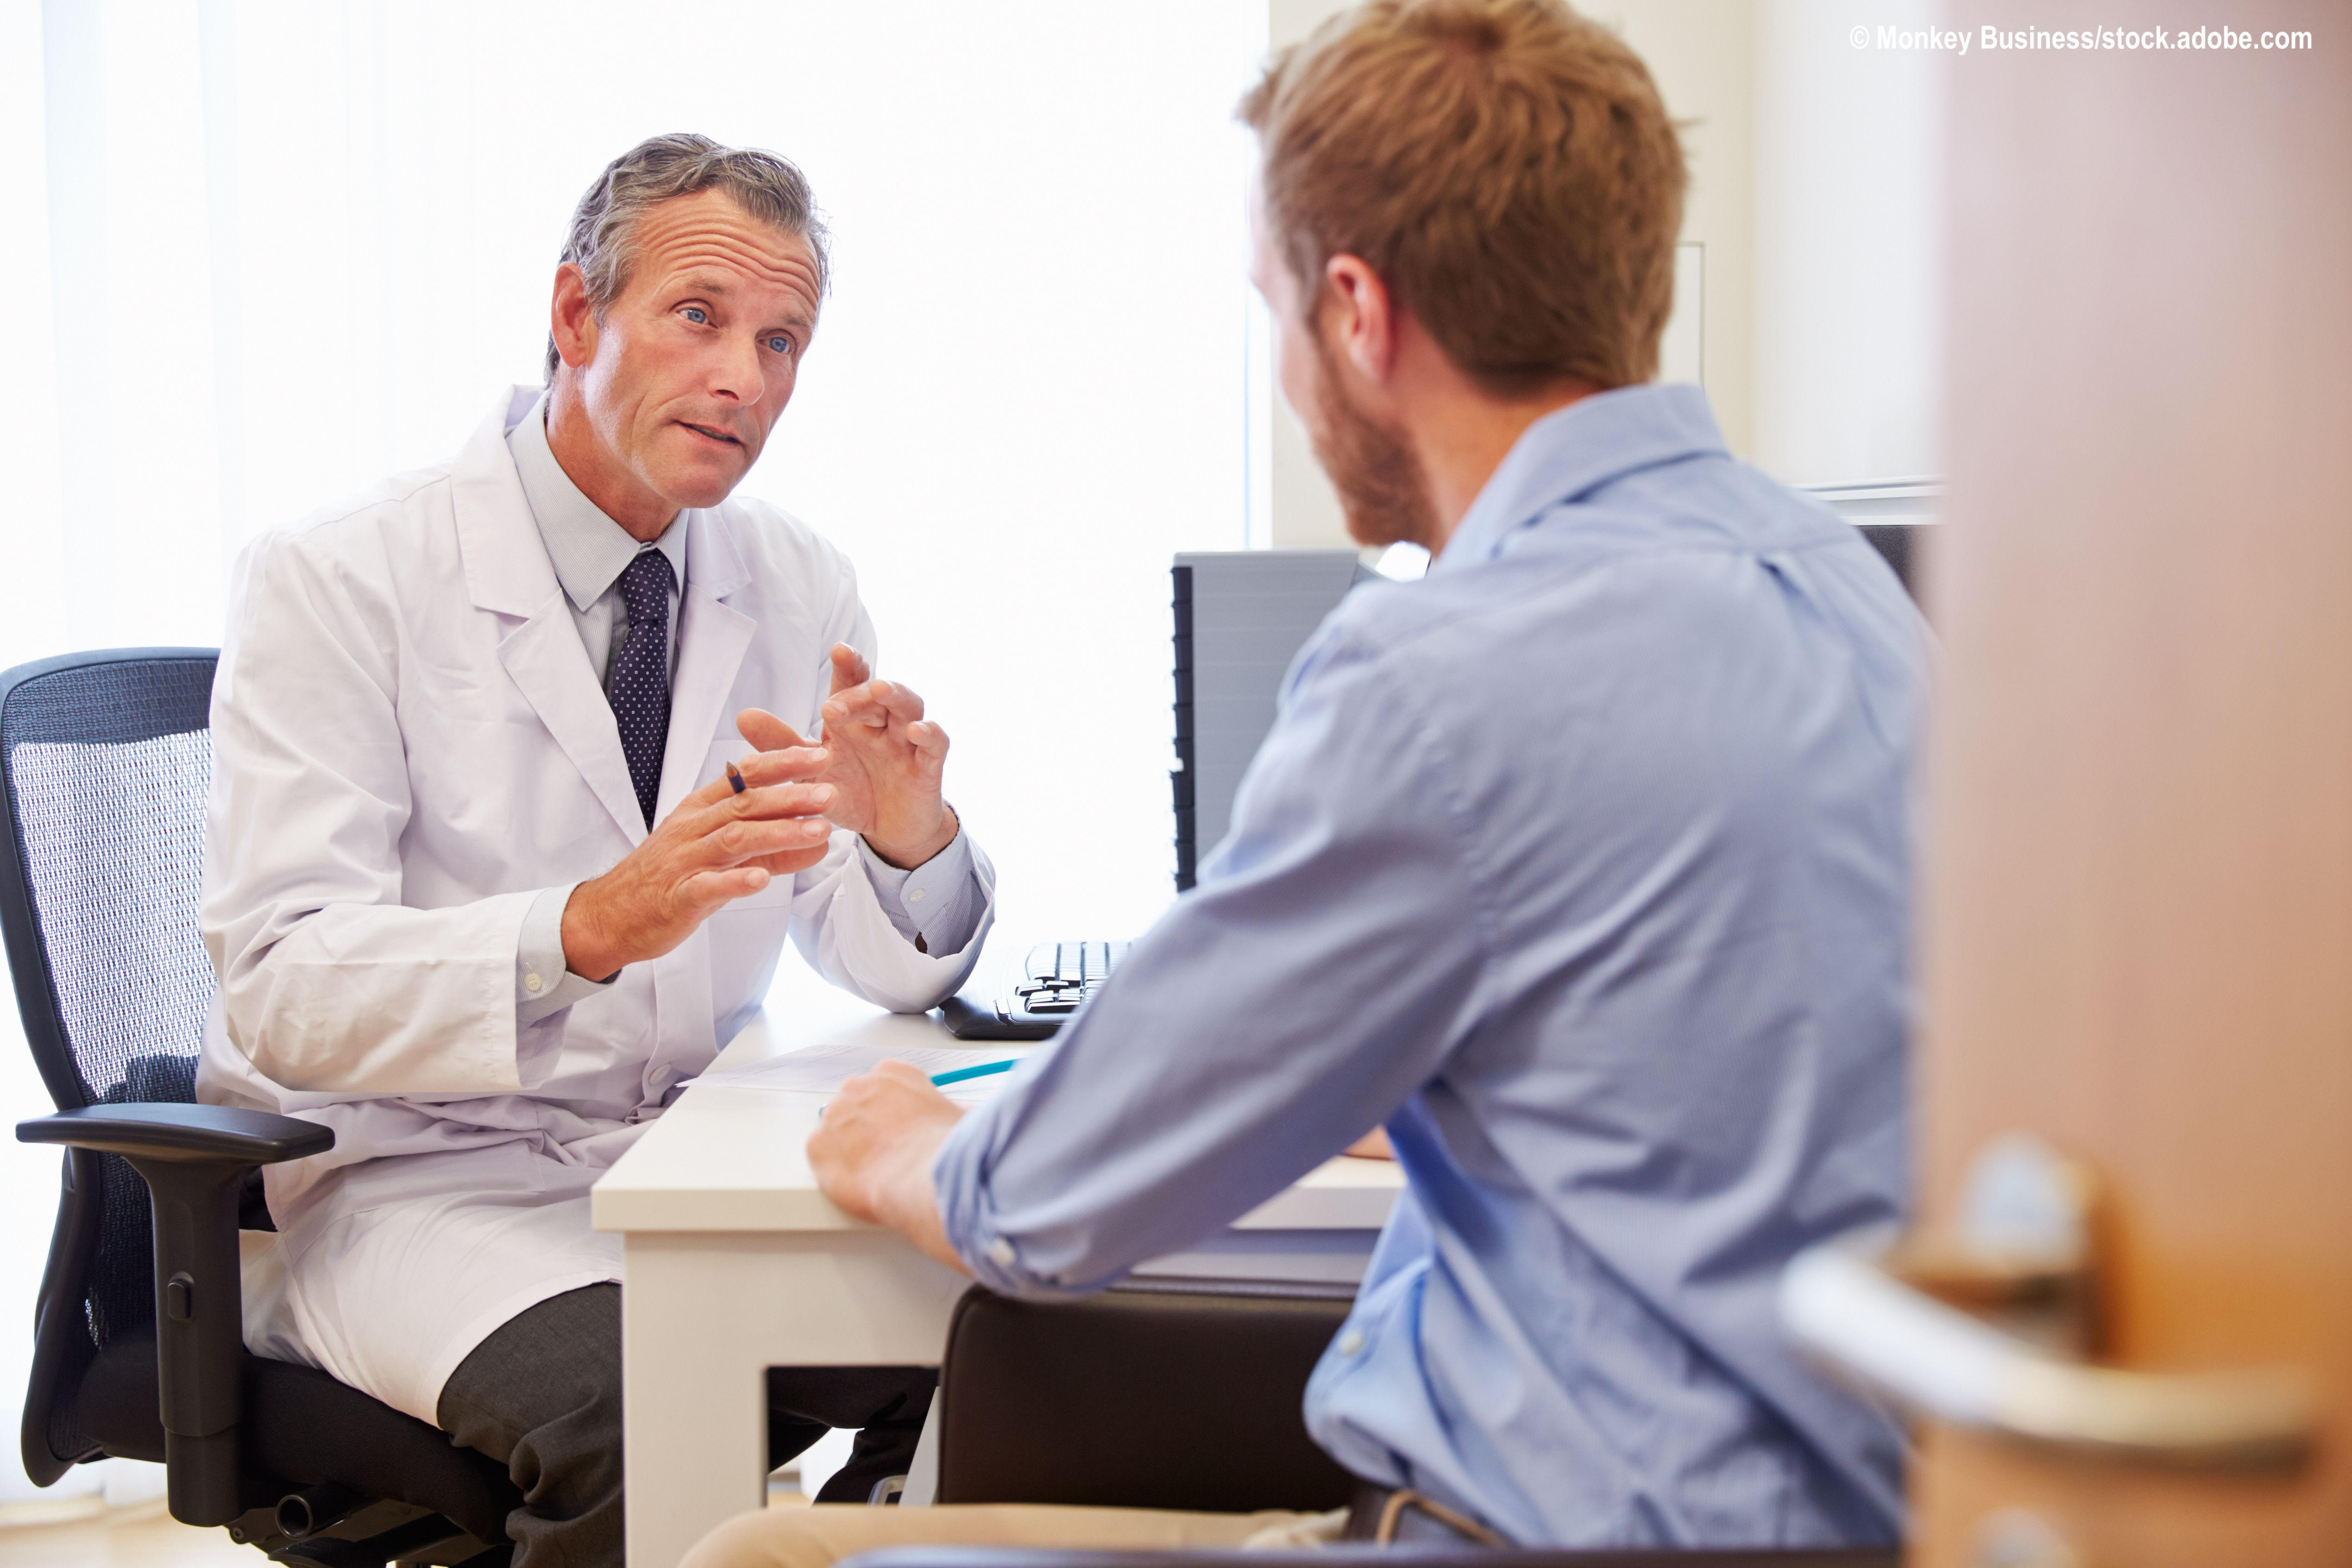 Clearing up preventive visit confusion